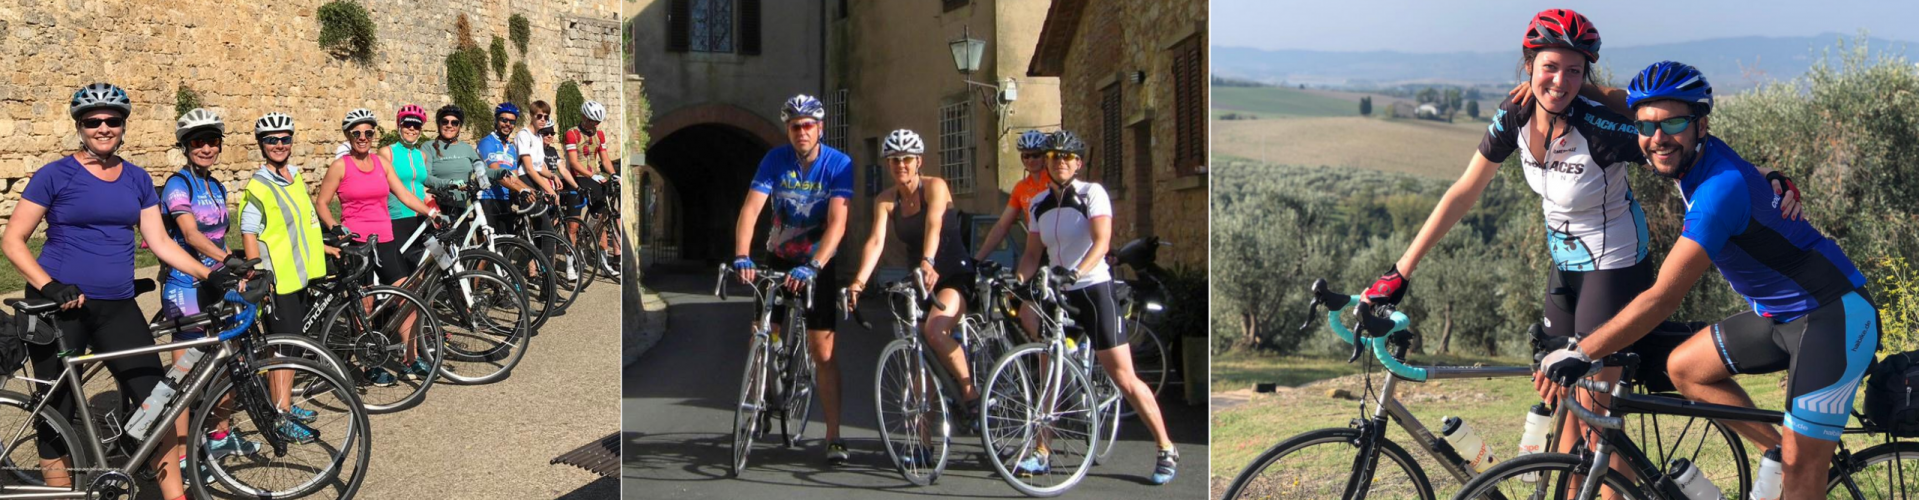 Group bicycle rentals in Europe with BikeRentalsPlus